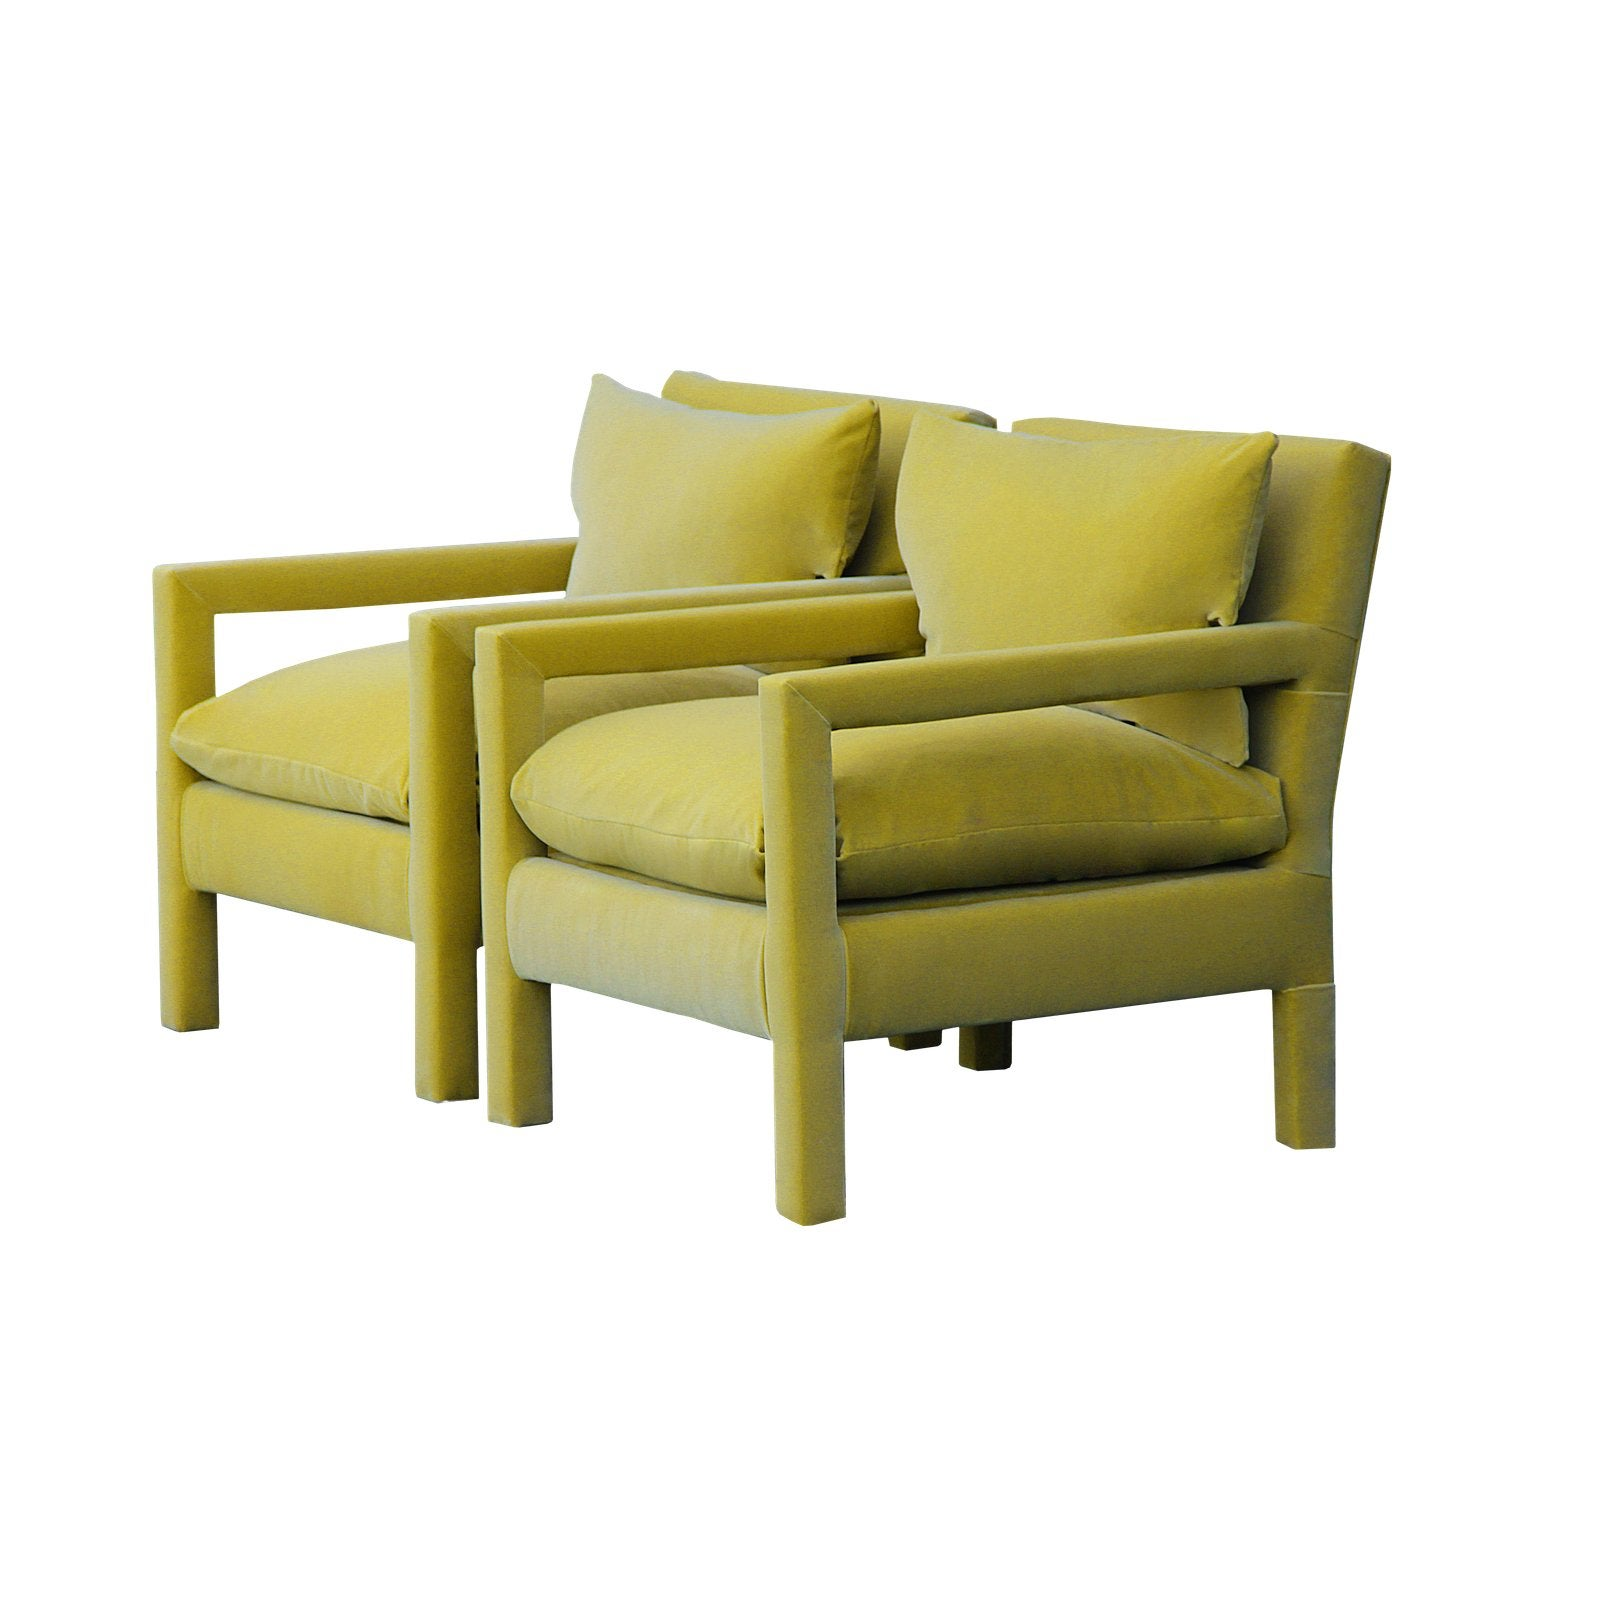 1970s-contemporary-milo-baughman-reupholstered-yellow-velvet-parsons-chairs-a-pair-5539